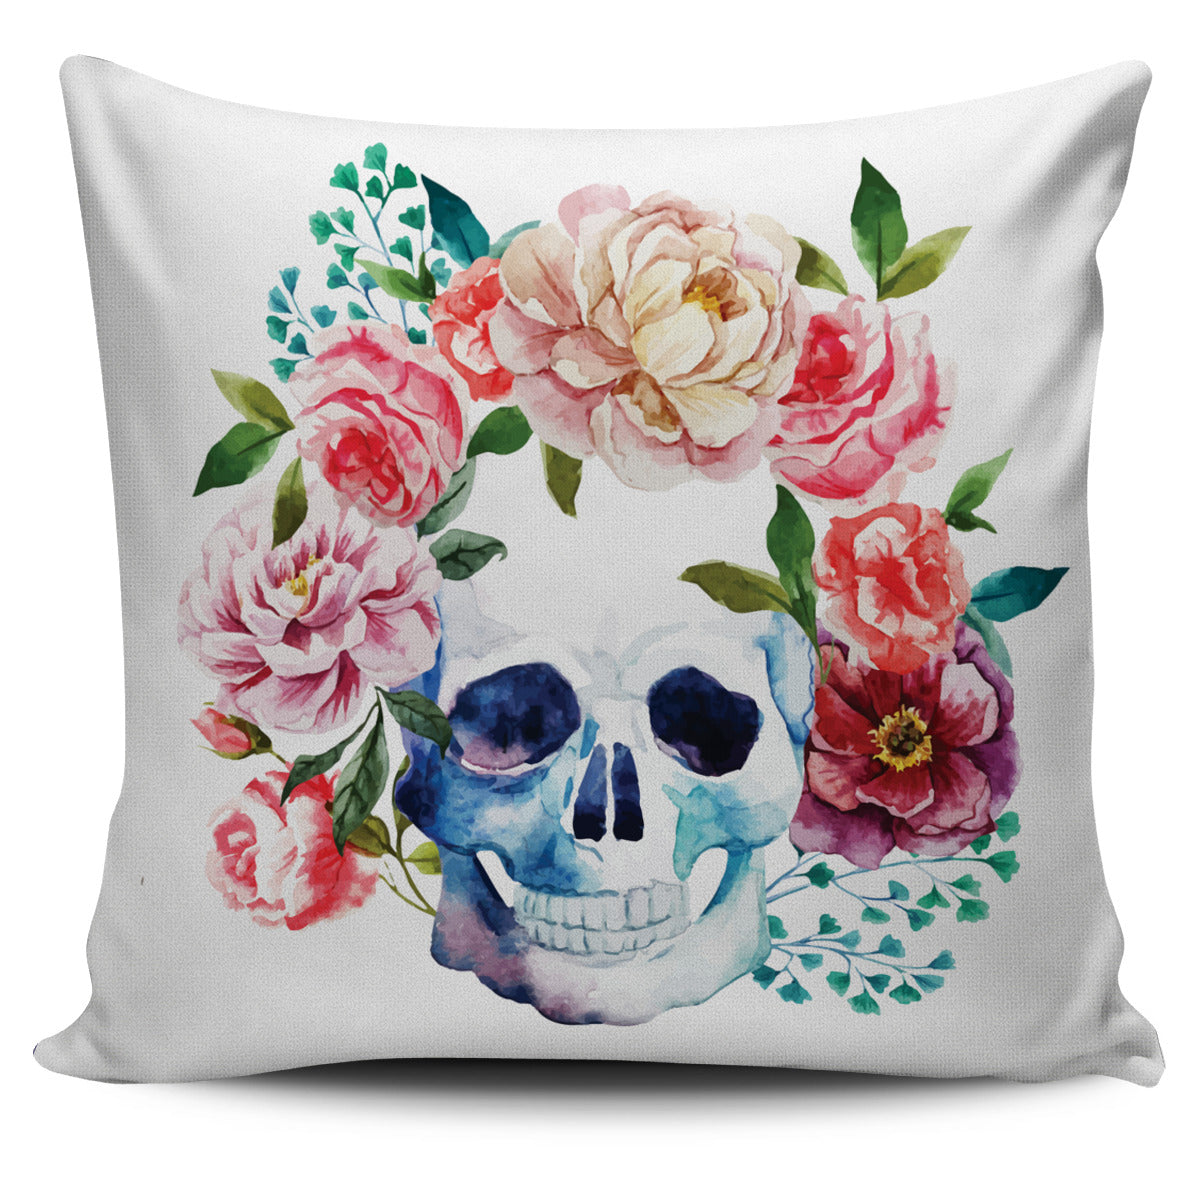 Floral Skull Pillow Cover - Hello Moa